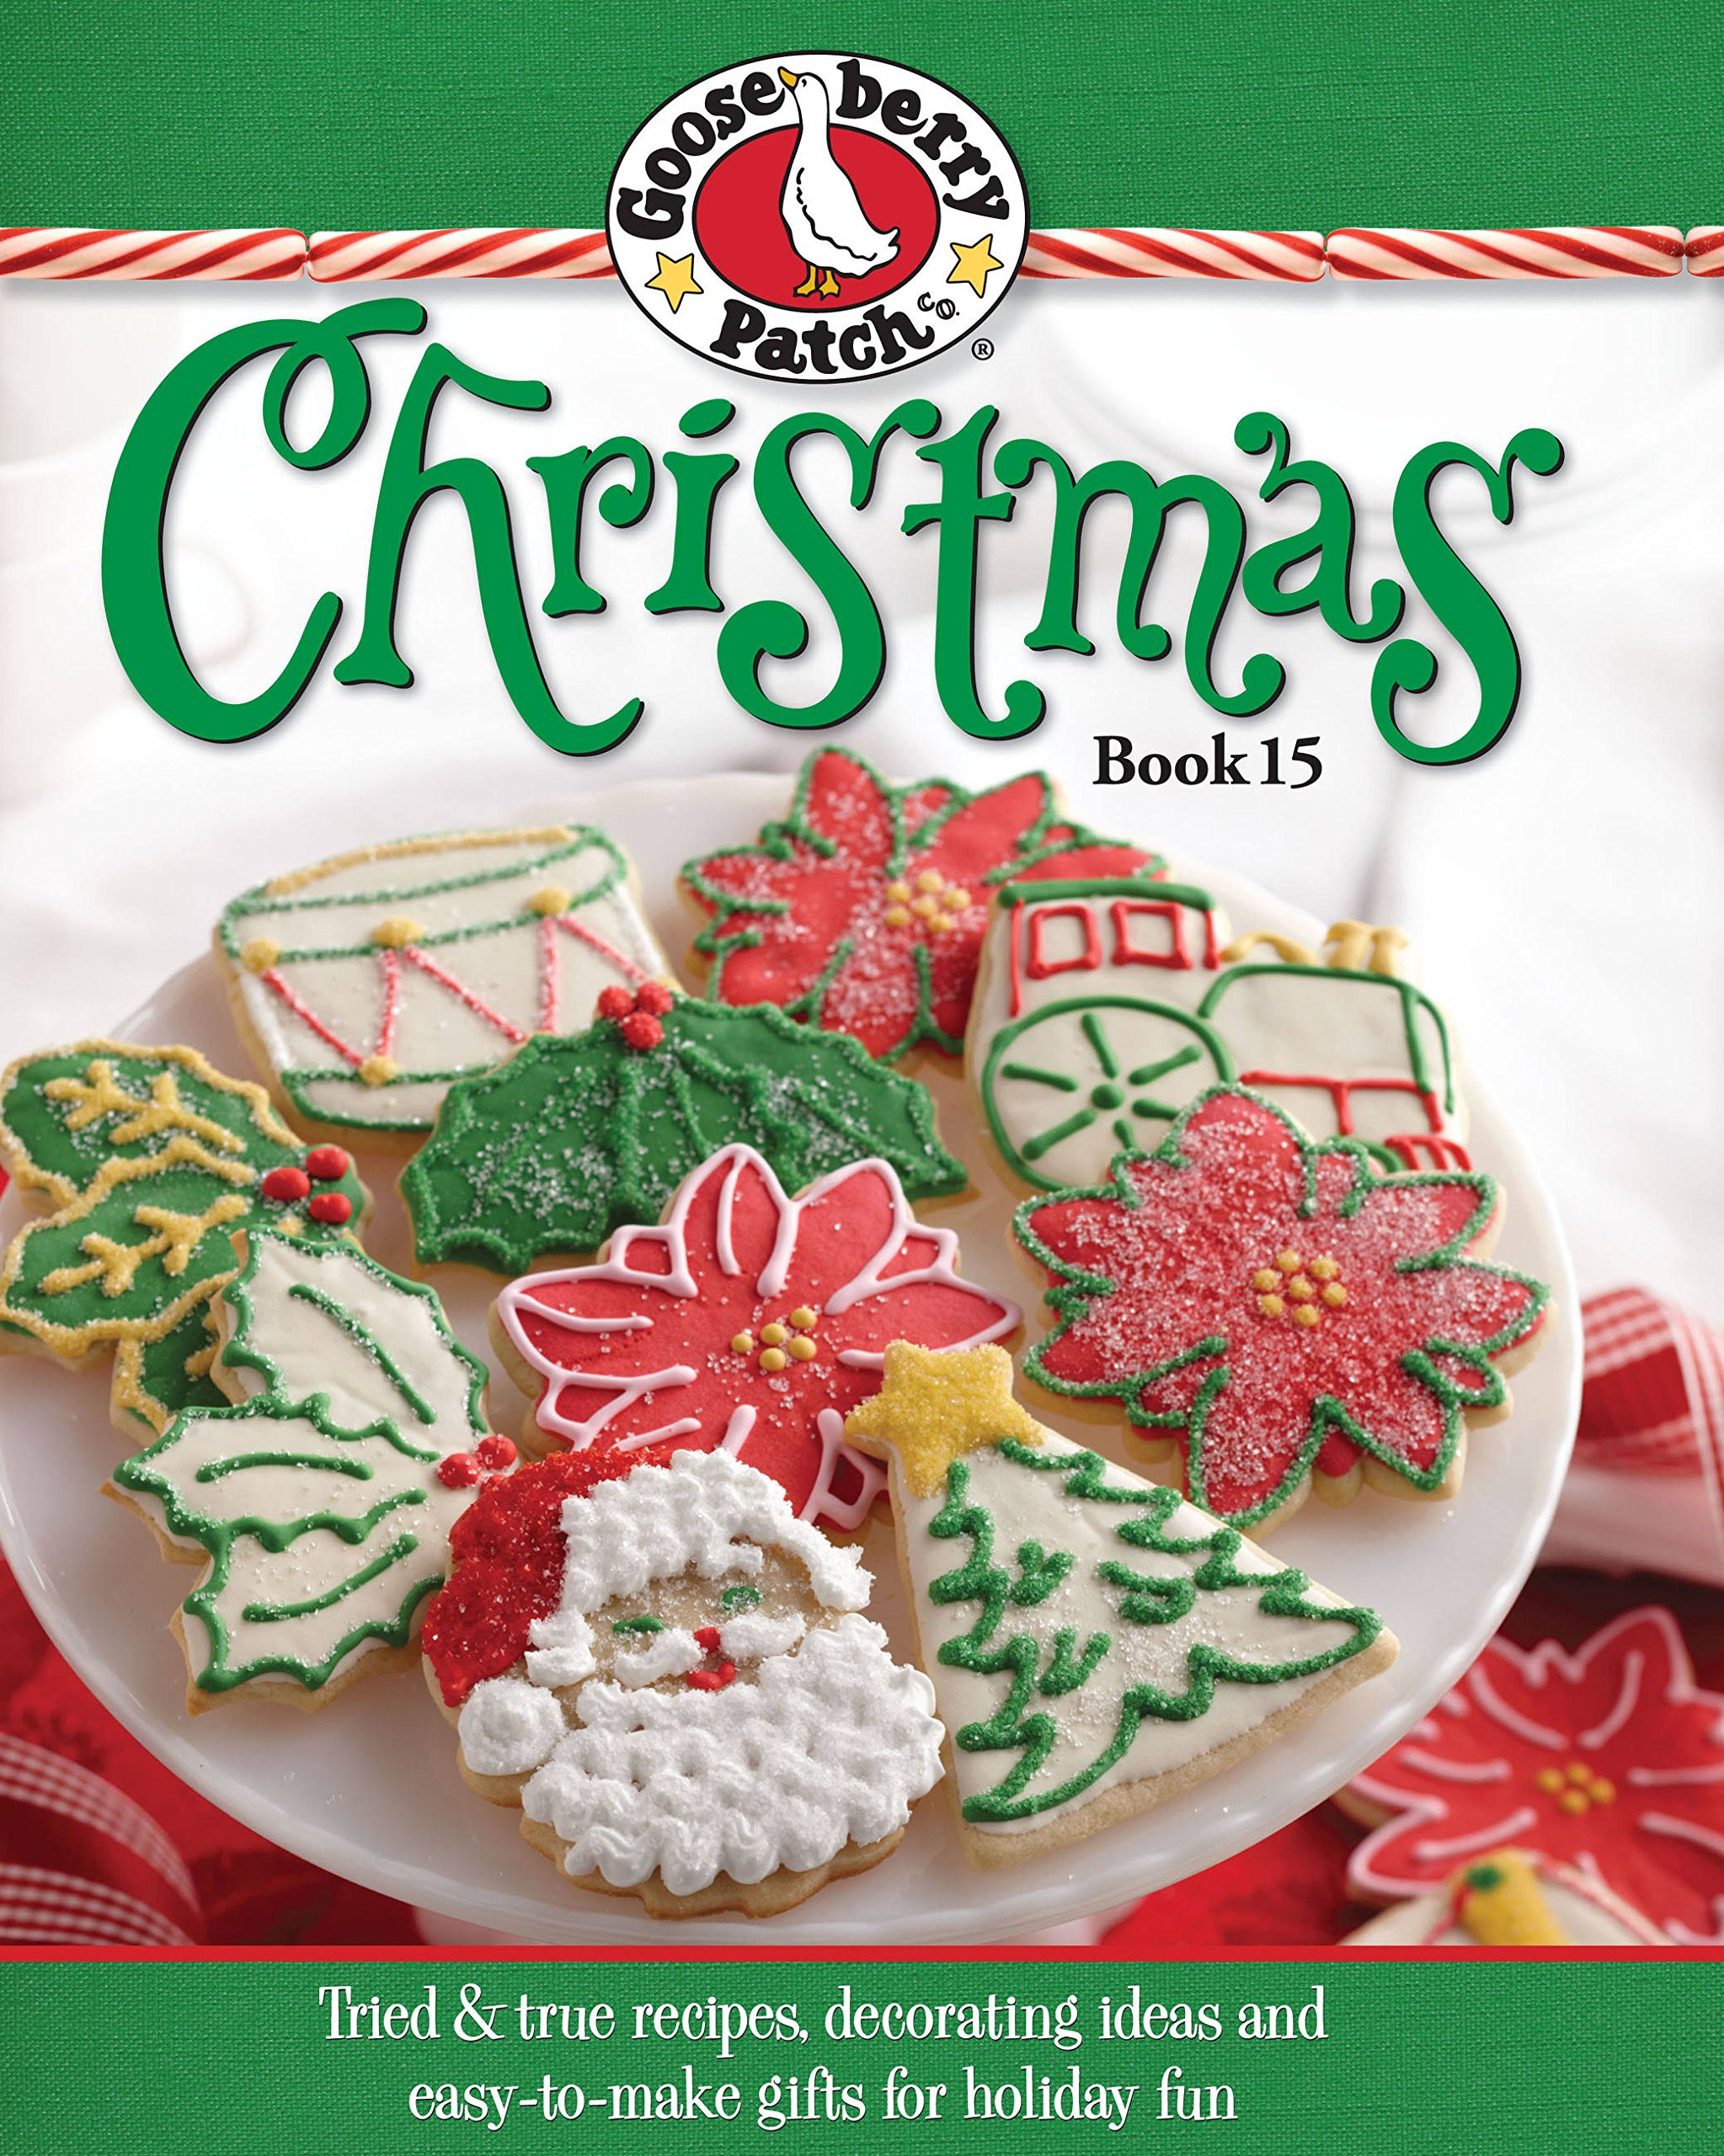 Gooseberry patch christmas book 15 tried true recipes gooseberry patch christmas book 15 tried true recipes decorating ideas and easy to make gifts for holiday fun gooseberry patch 9780848739843 forumfinder Images